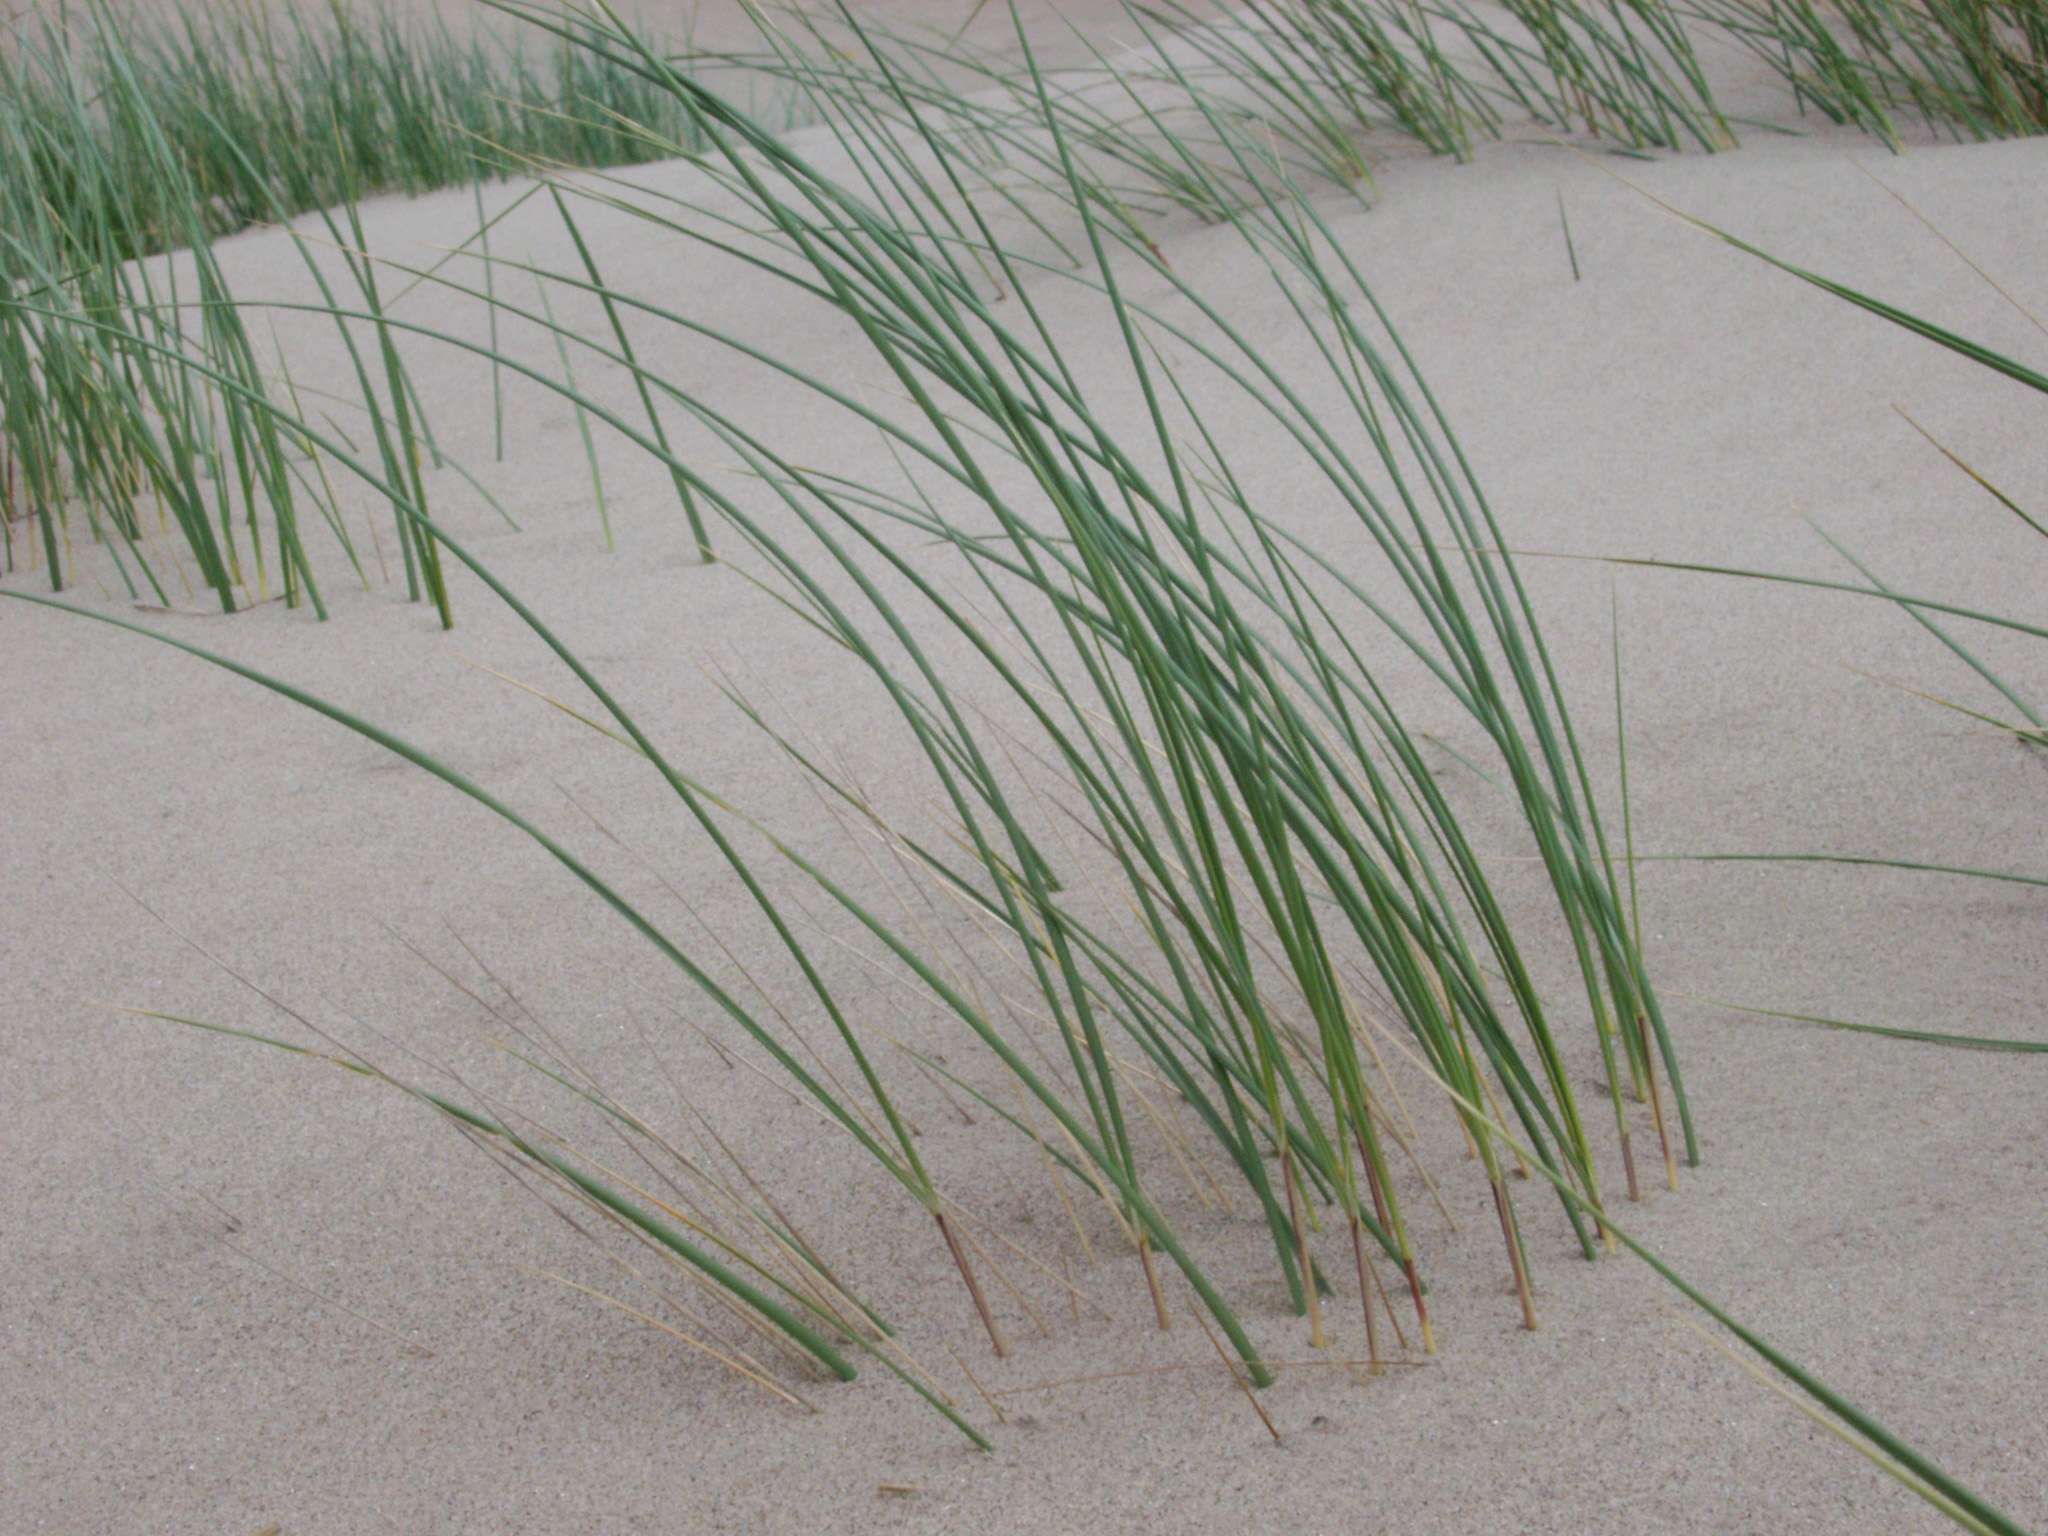 Coastal grass growing on a sand dune in the golden sand in a unique fragile natural habitat